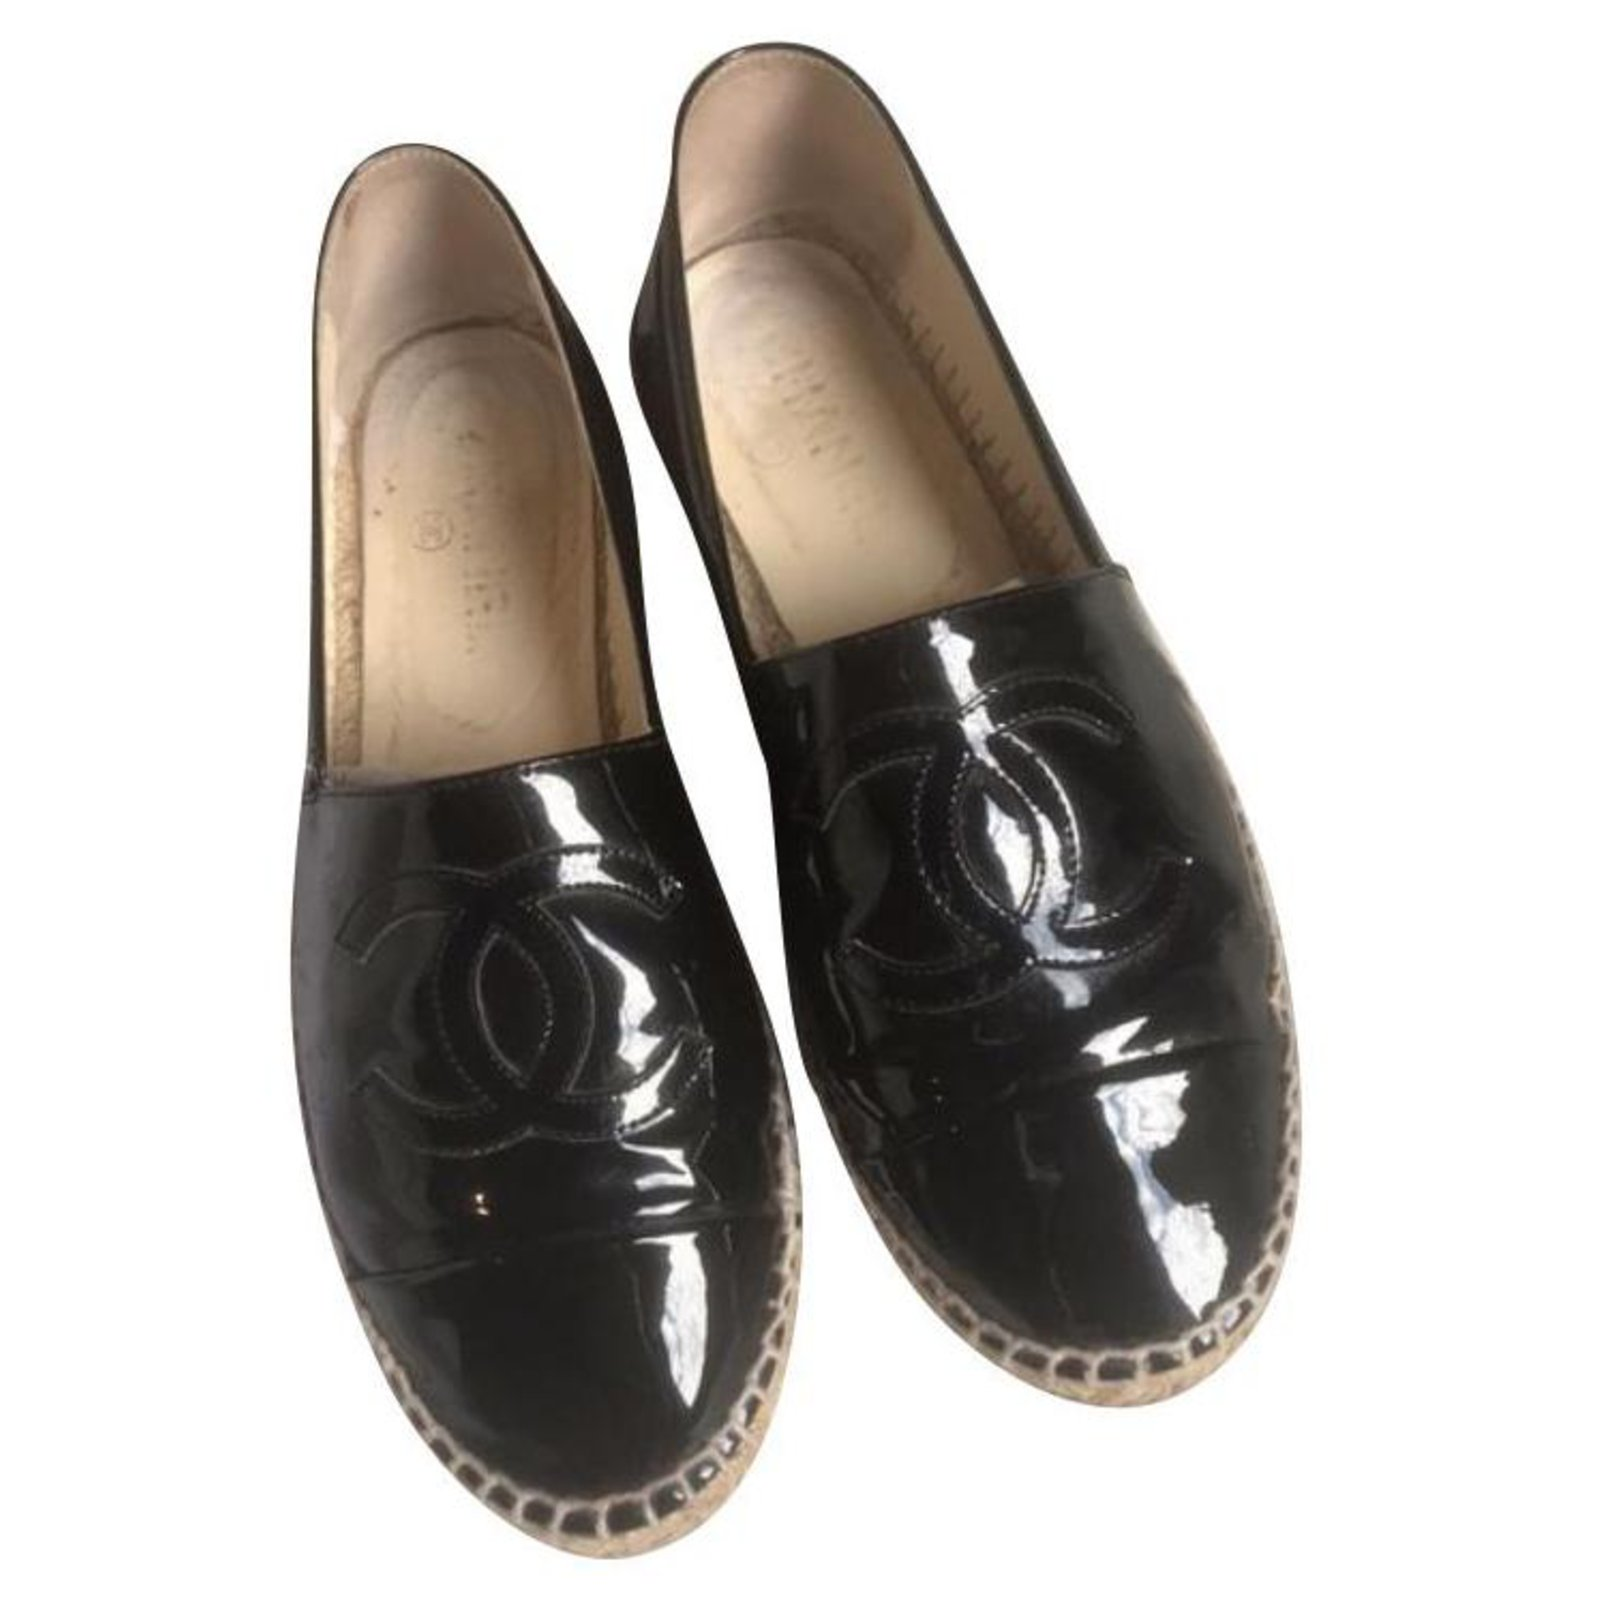 Chanel Espadrille Flats Patent leather